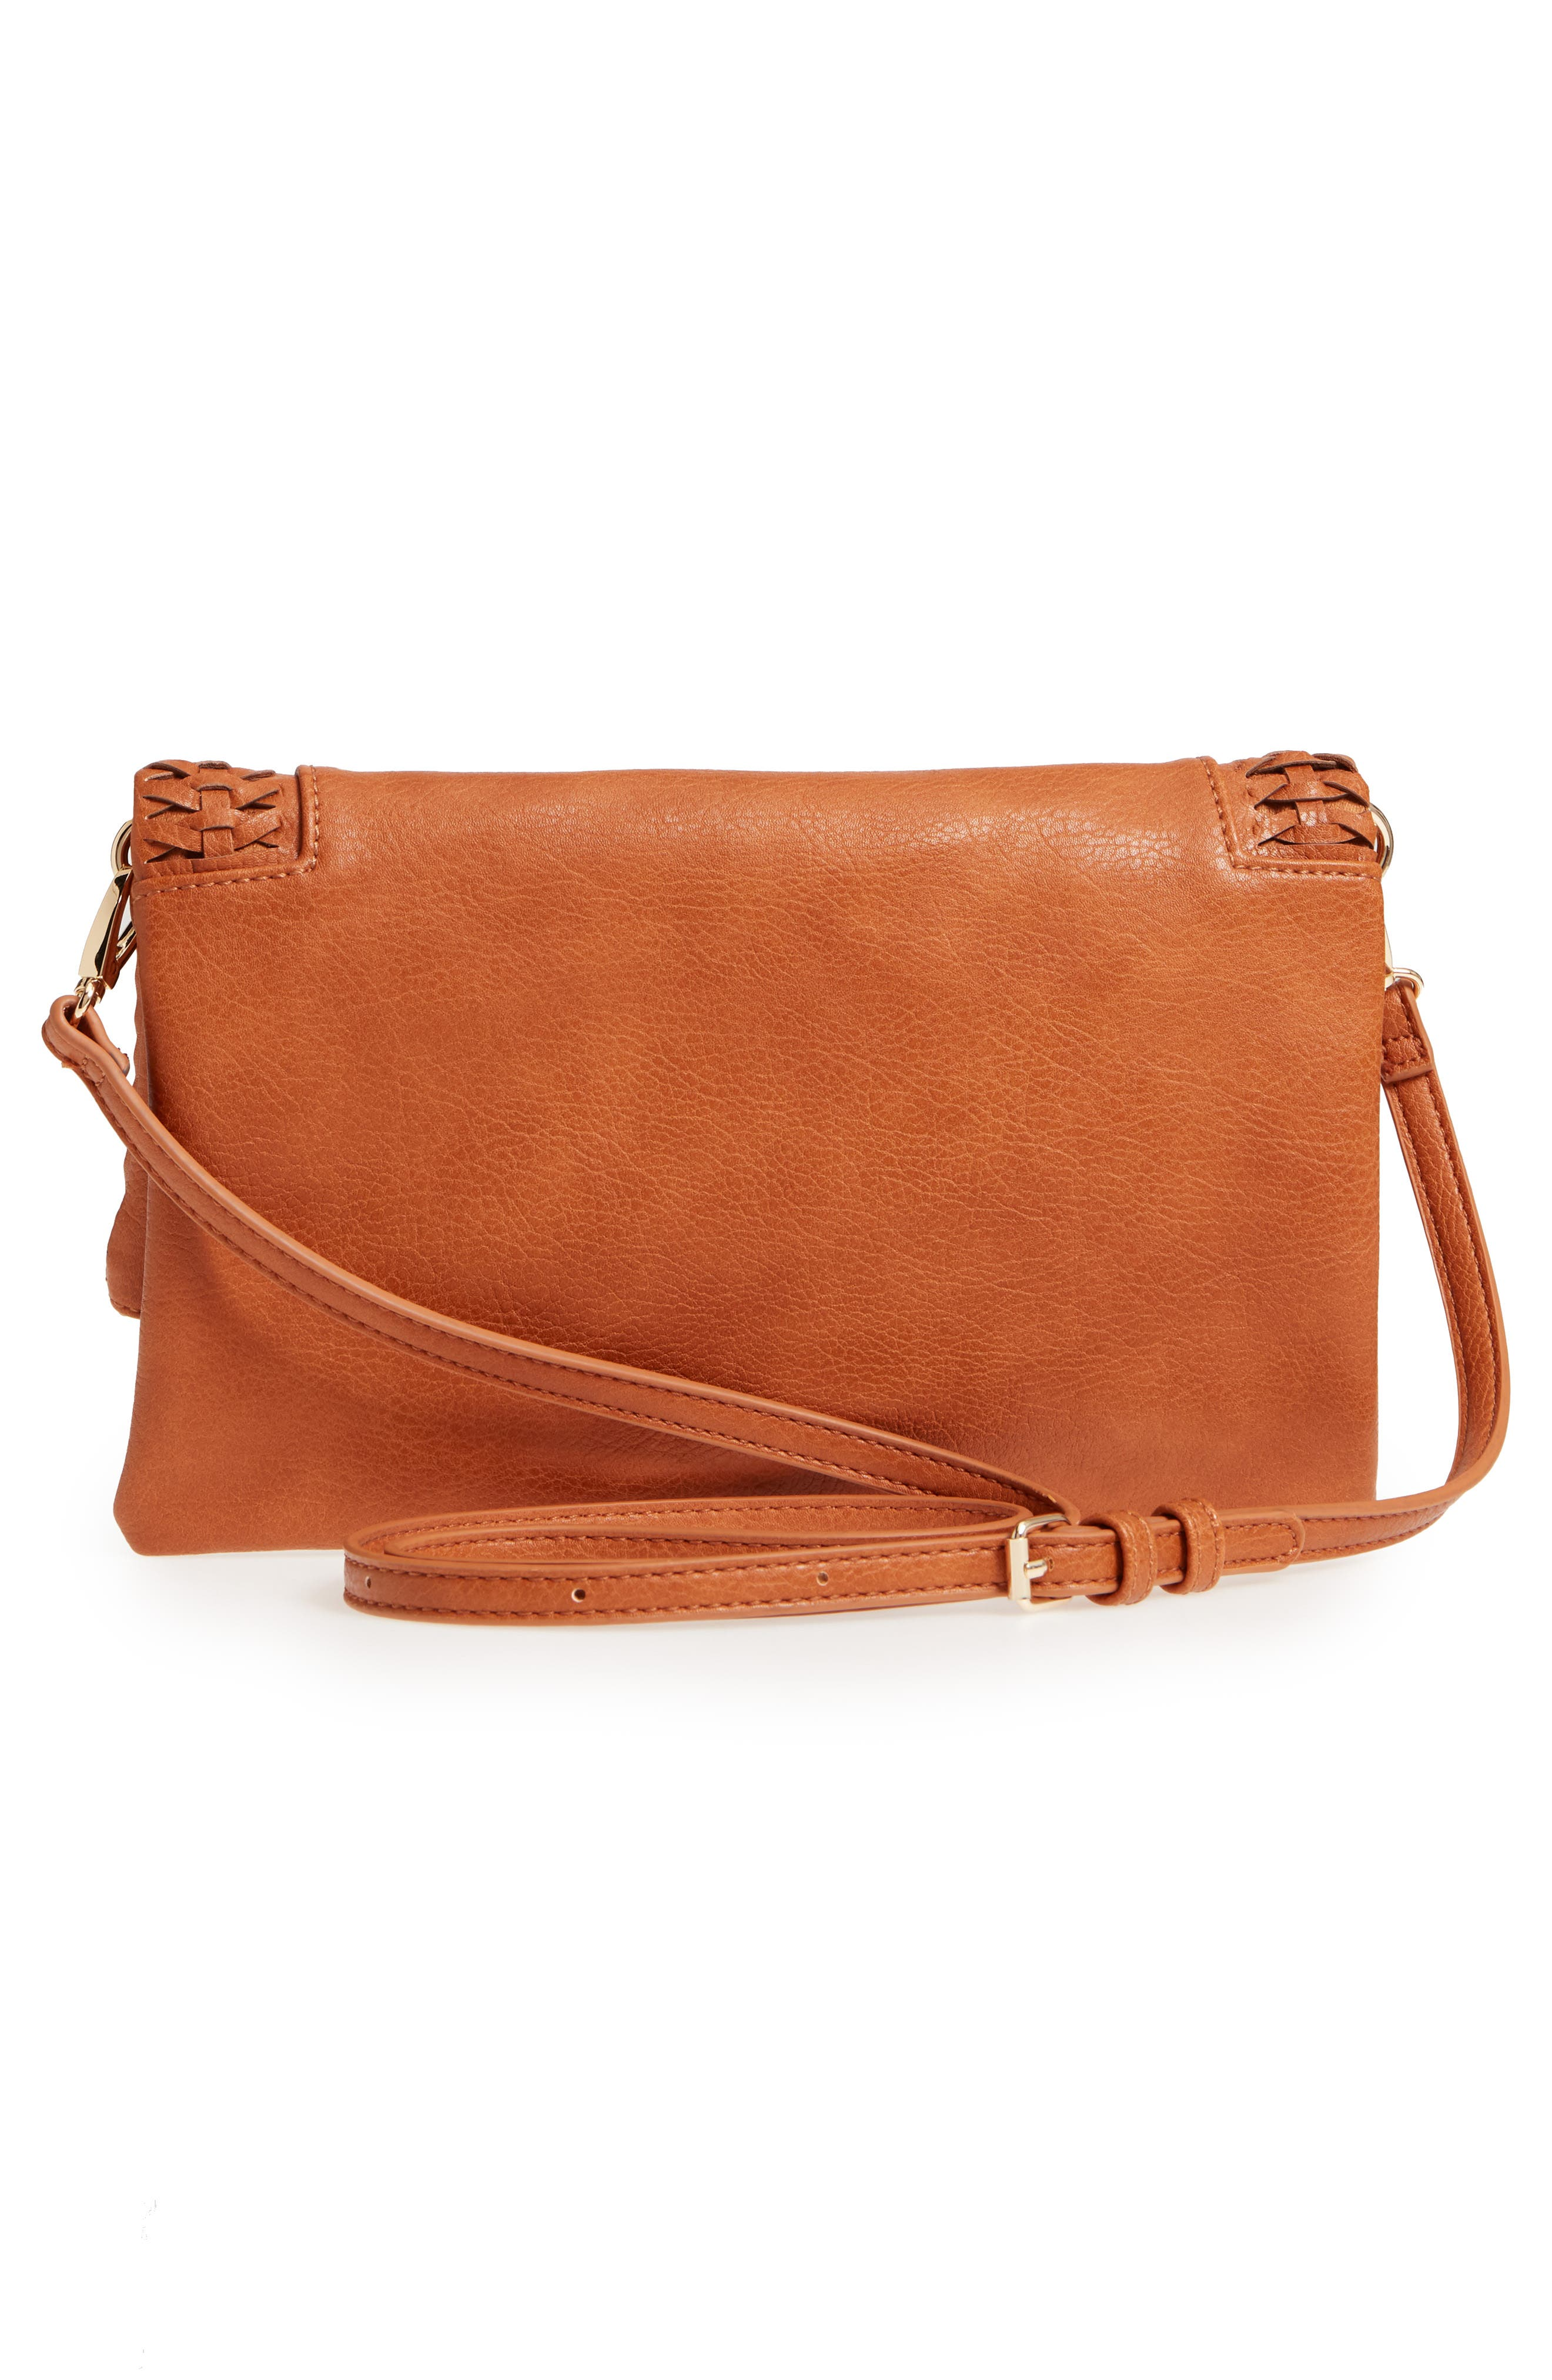 Tara Whipstitched Faux Leather Clutch,                             Alternate thumbnail 3, color,                             230